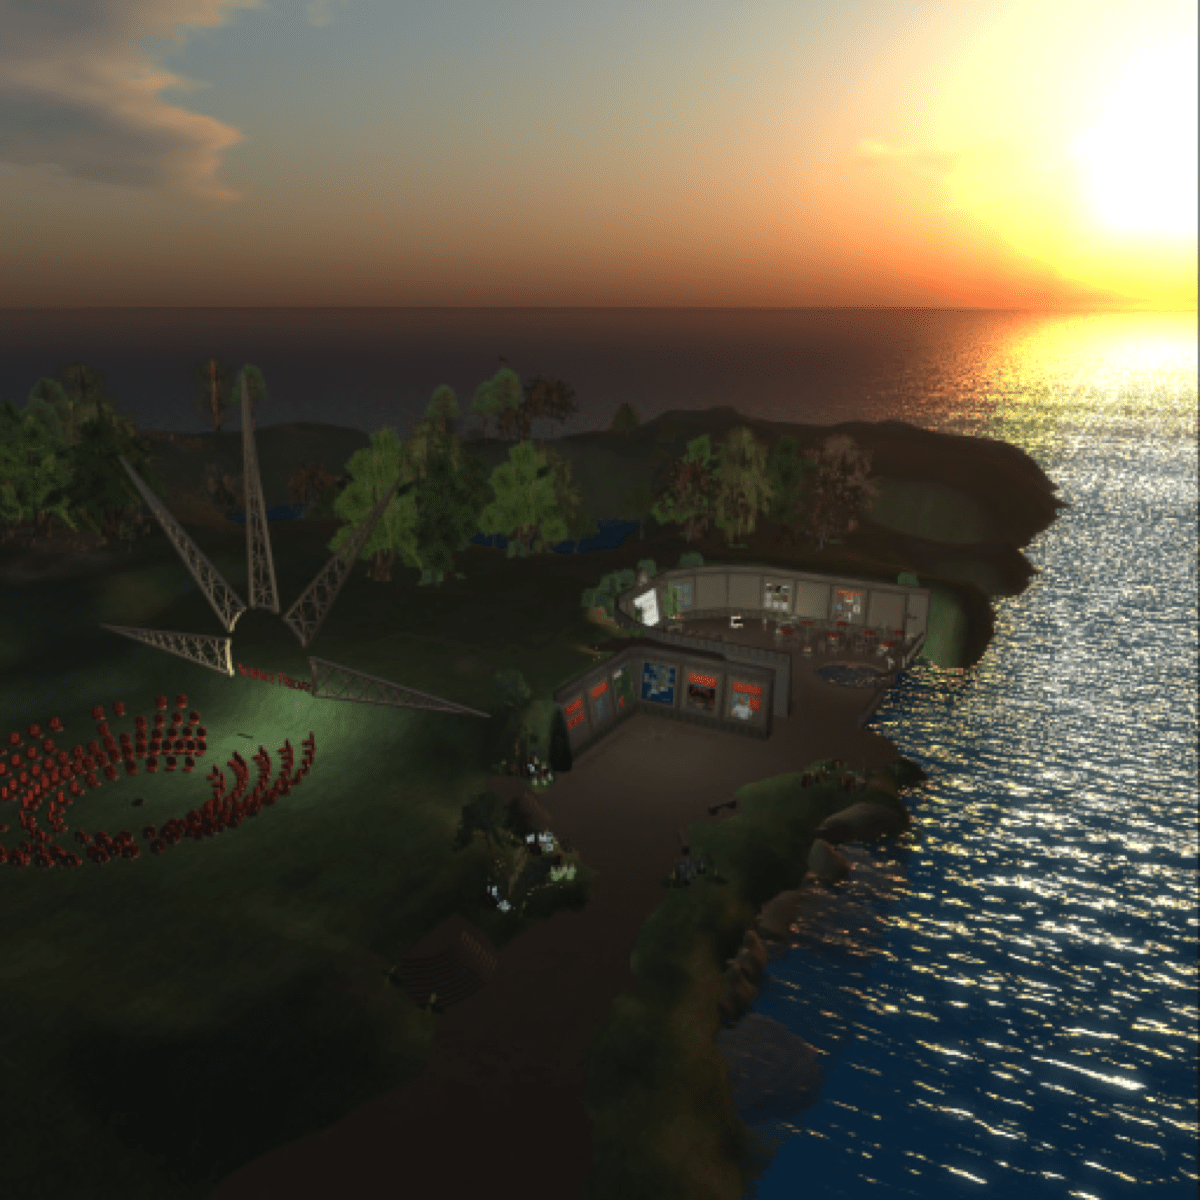 a beautiful virtual island in second life. the sun sets on the island highlighting the waves of the nearby ocean